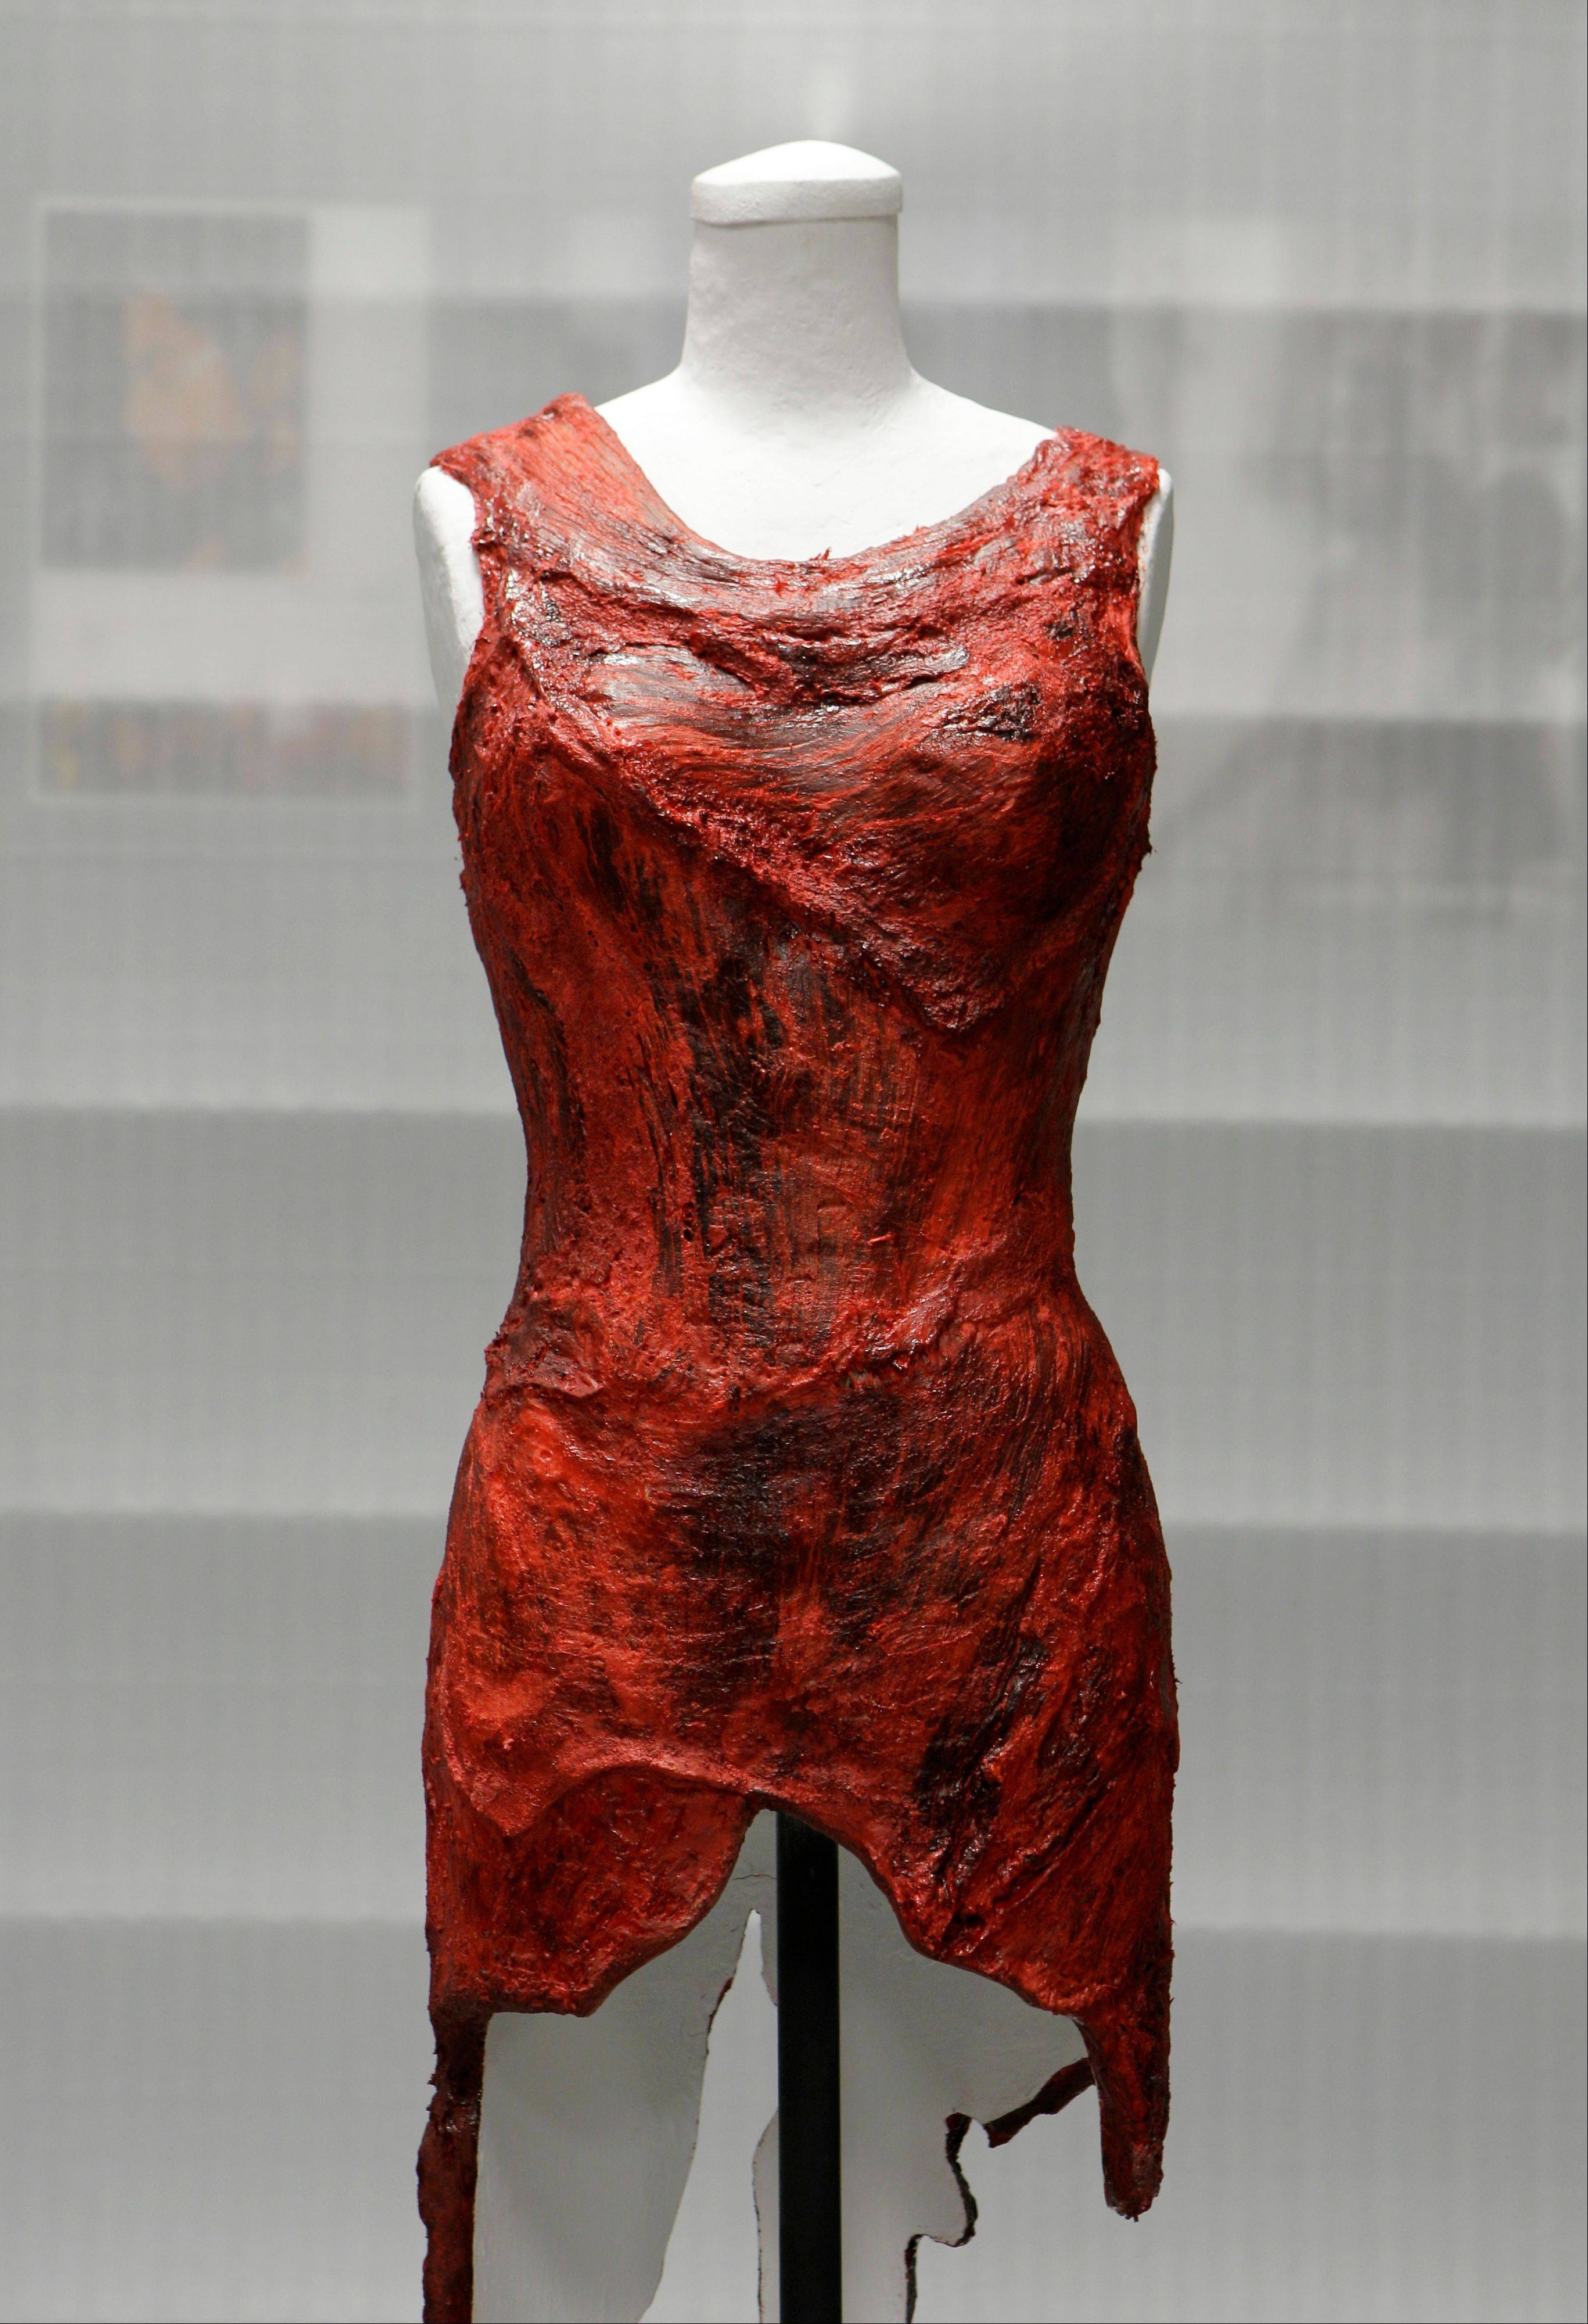 Lady Gaga's famous meat dress, now dried and painted, is being displayed at the National Museum of Women in the Arts with an explanation of her political message.